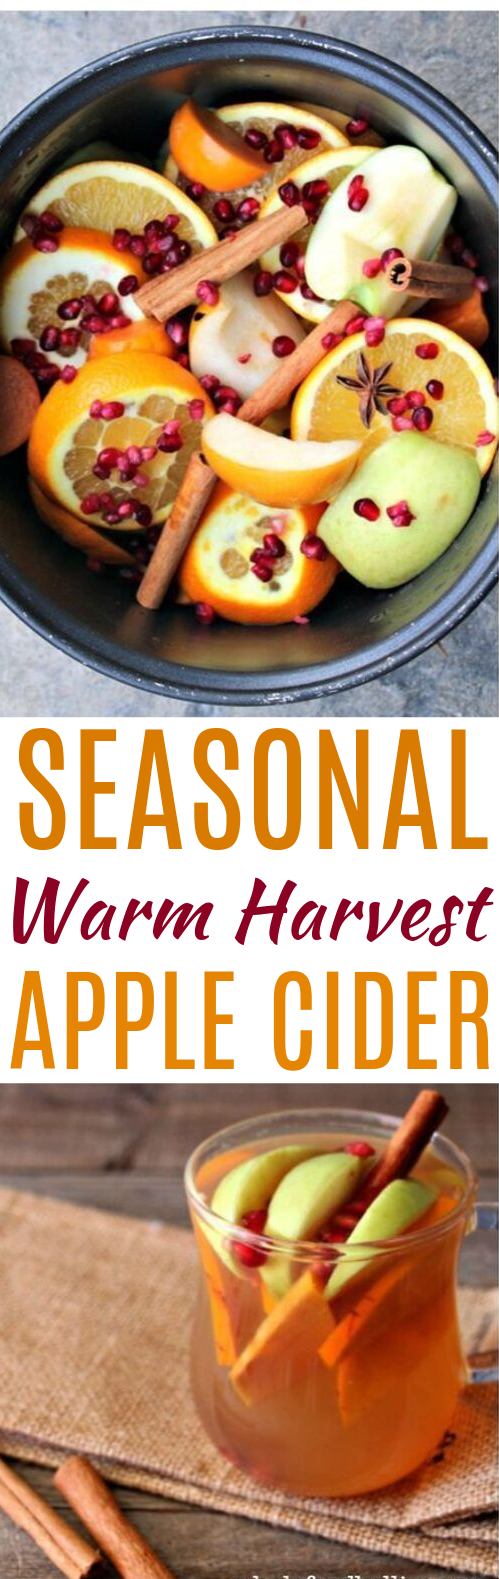 Homemade Fall Harvest Hot Crockpot Apple Cider #drinks #applecider